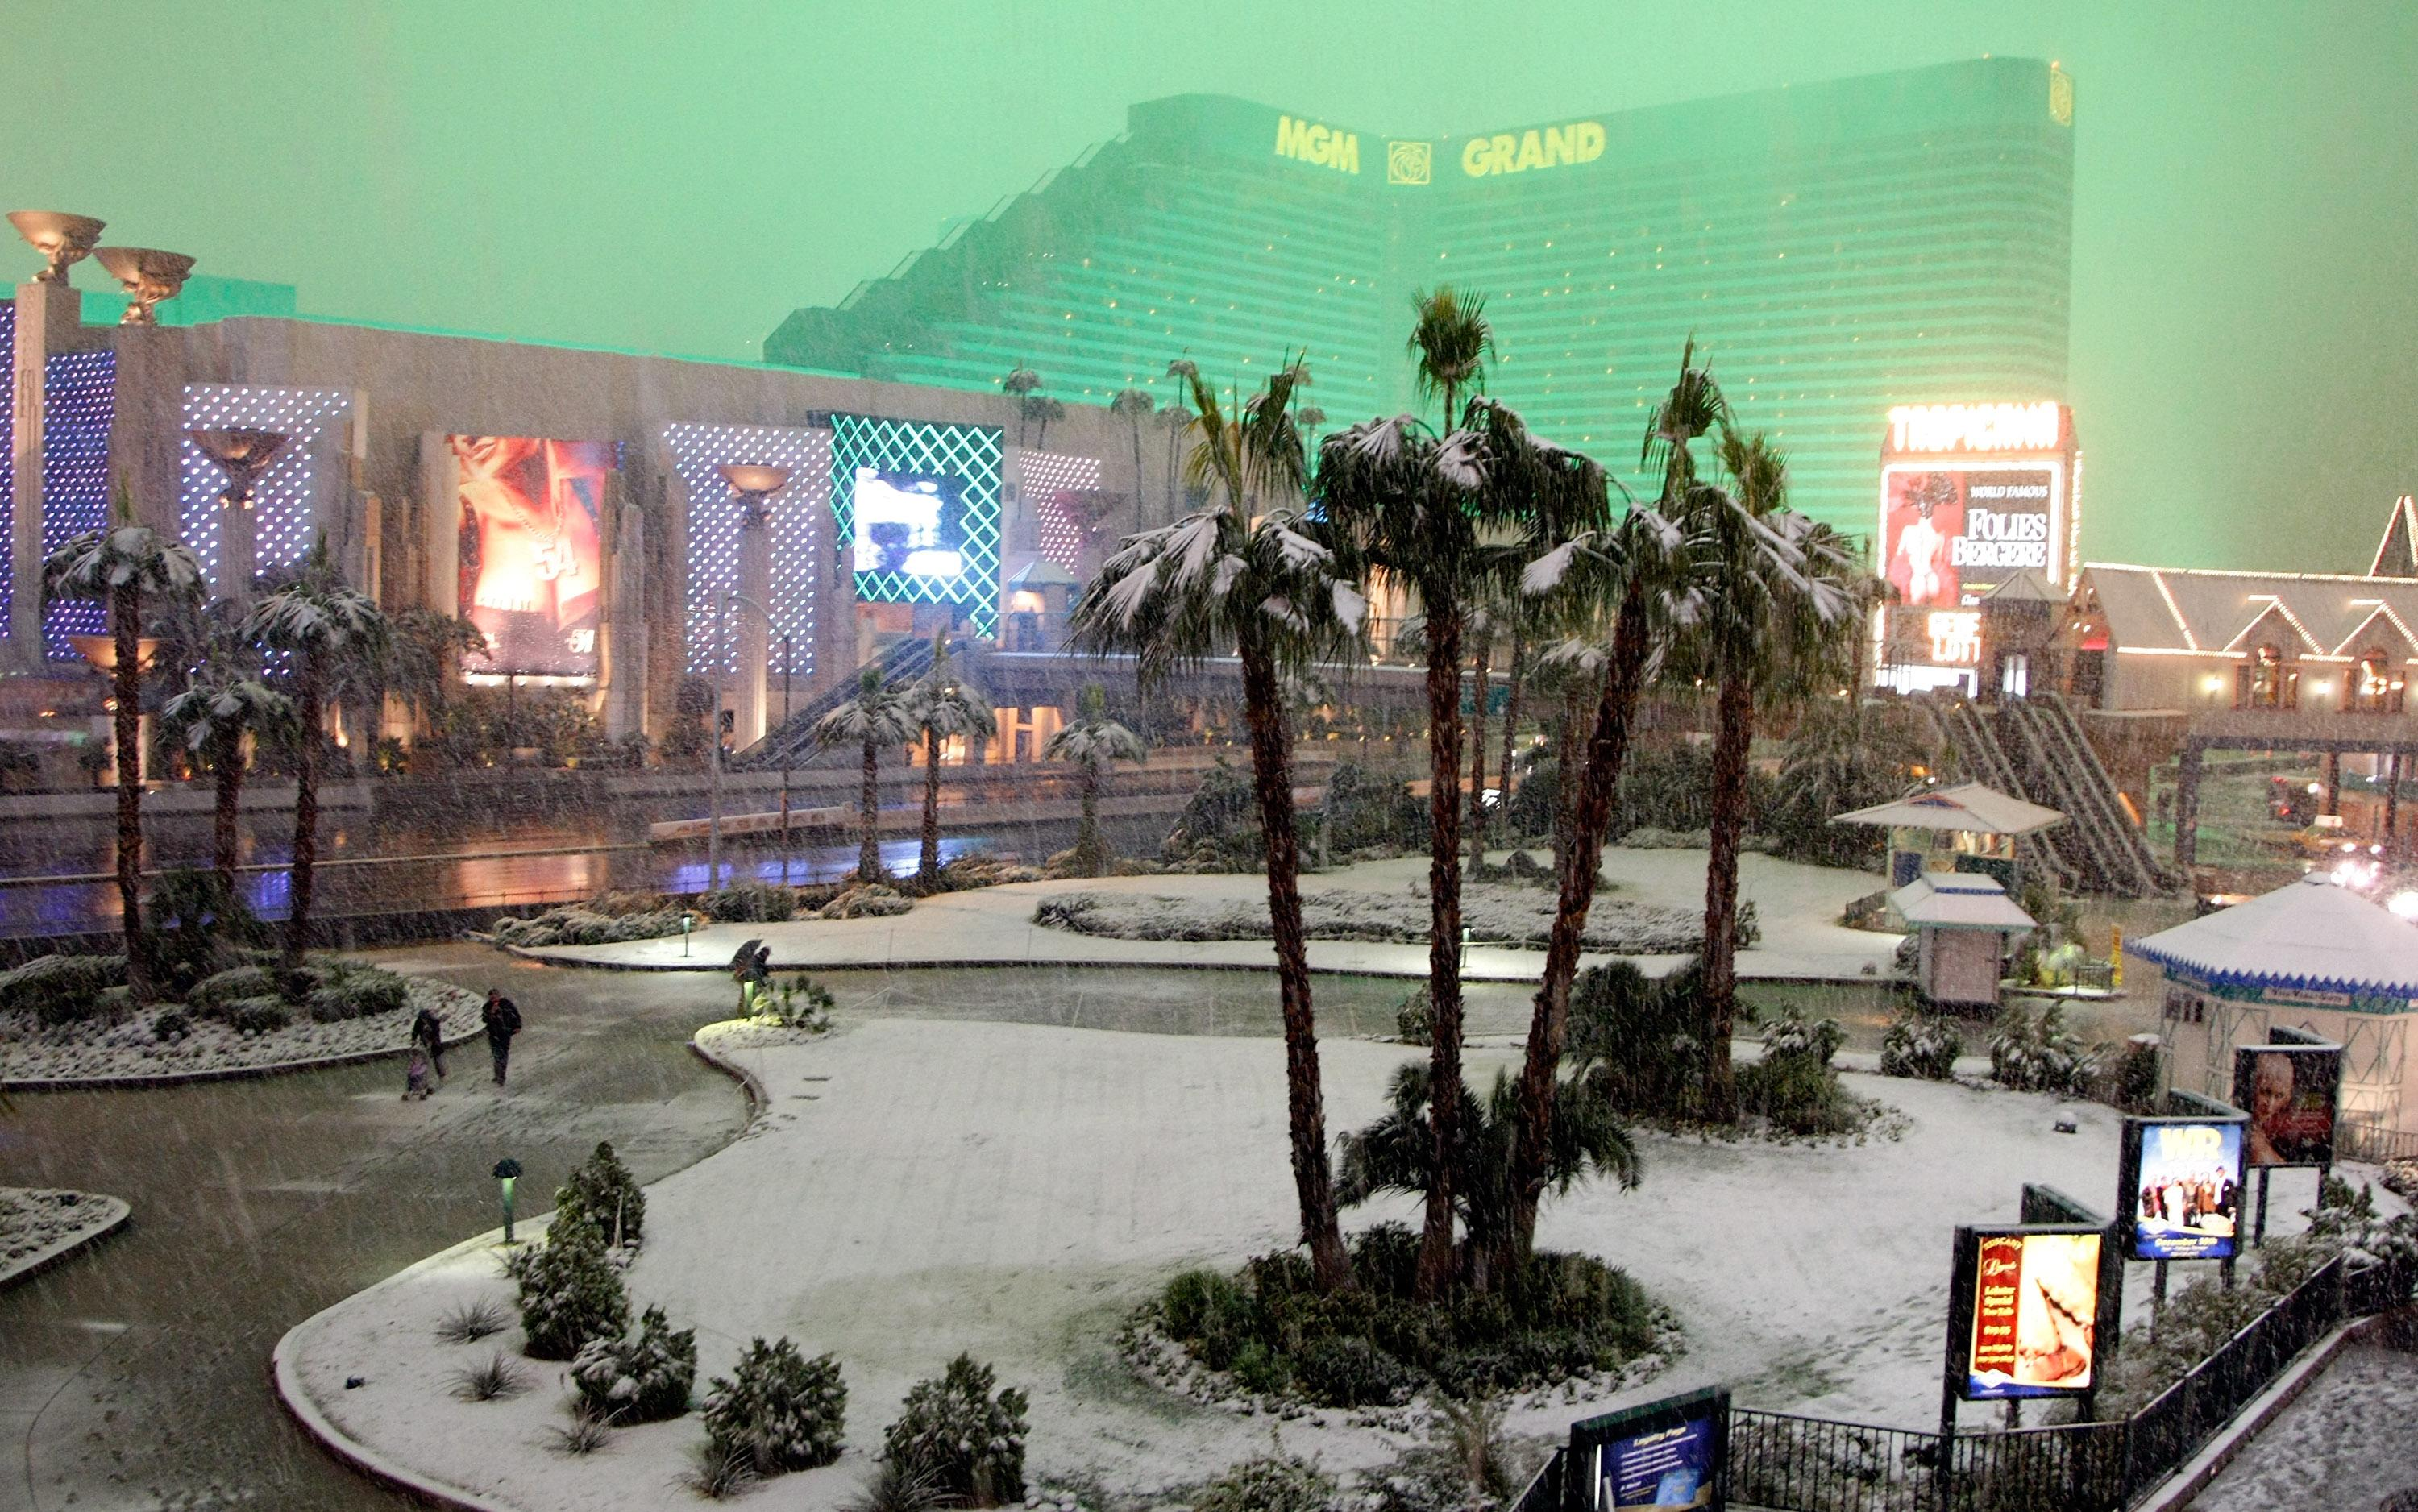 Snow in Vegas! 1st measurable since record keeping started